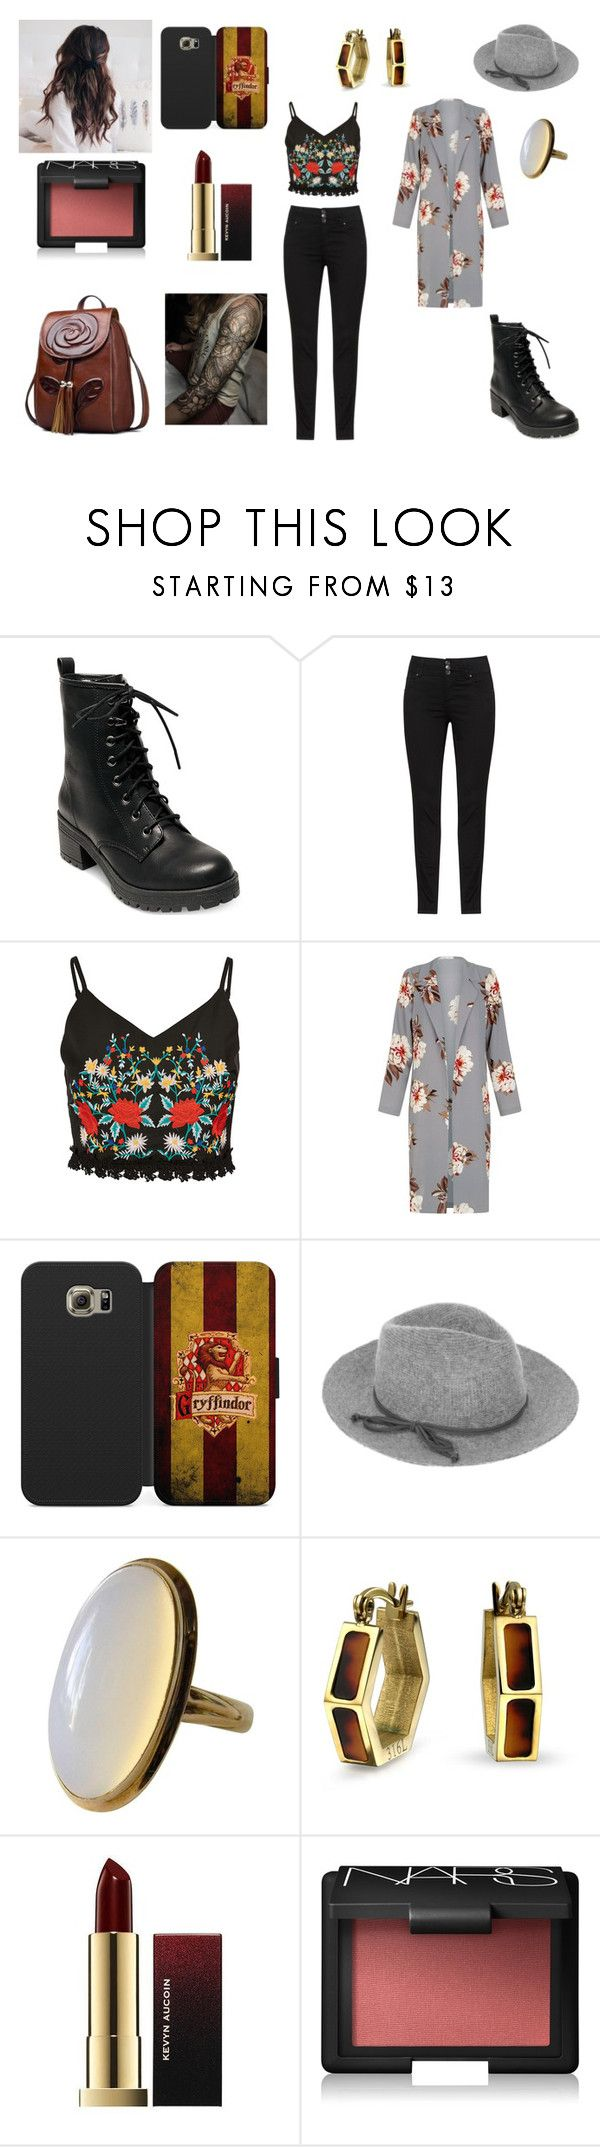 """""""Sans titre #2596"""" by amandine-collet on Polyvore featuring mode, Madden Girl, Samsung, Accessorize, Bling Jewelry et NARS Cosmetics"""